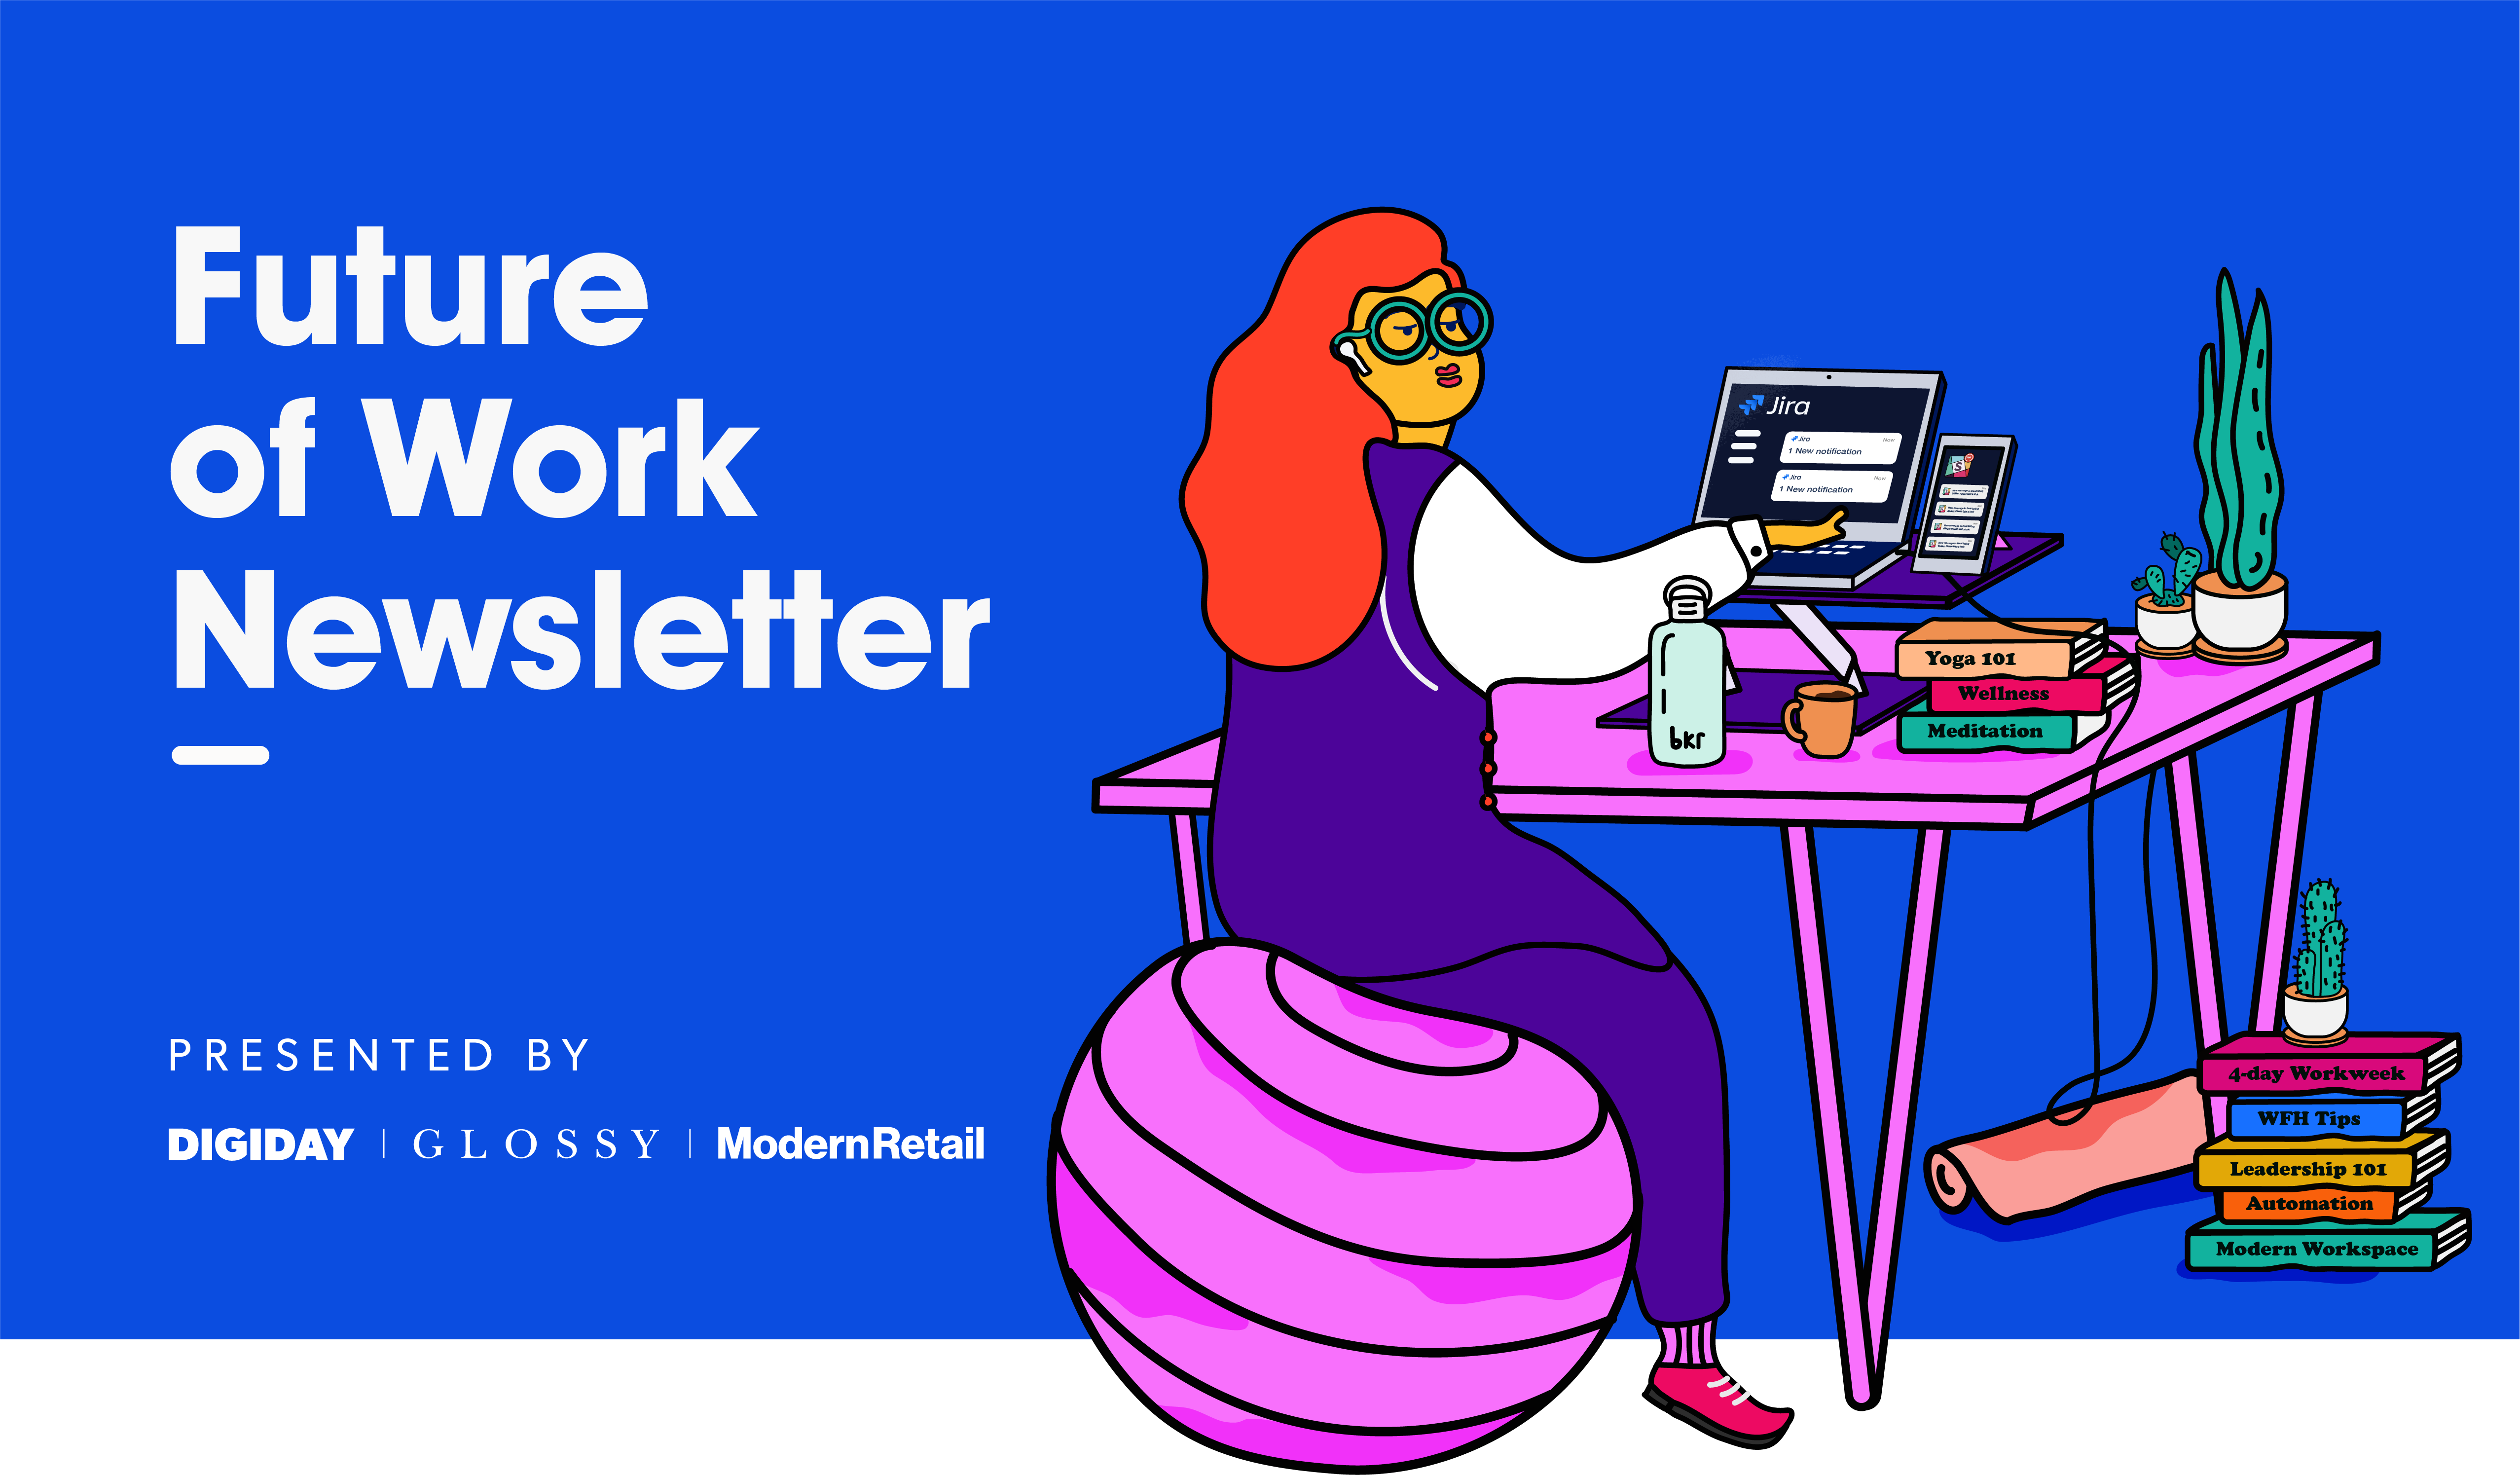 Introducing the Future of Work Newsletter